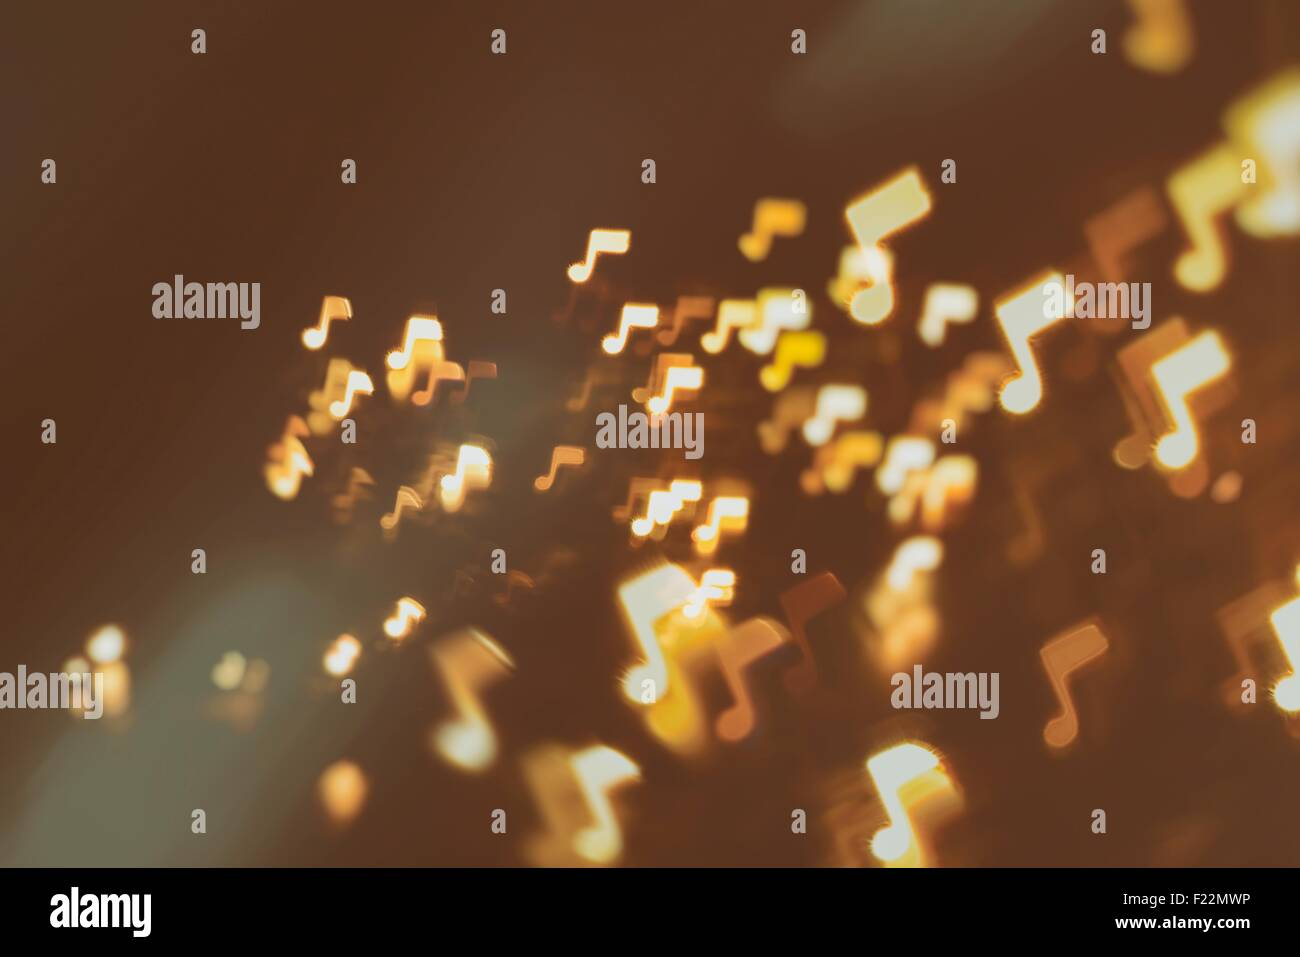 music, sound and notes abstract blur background (notes signs fly in space) - Stock Image